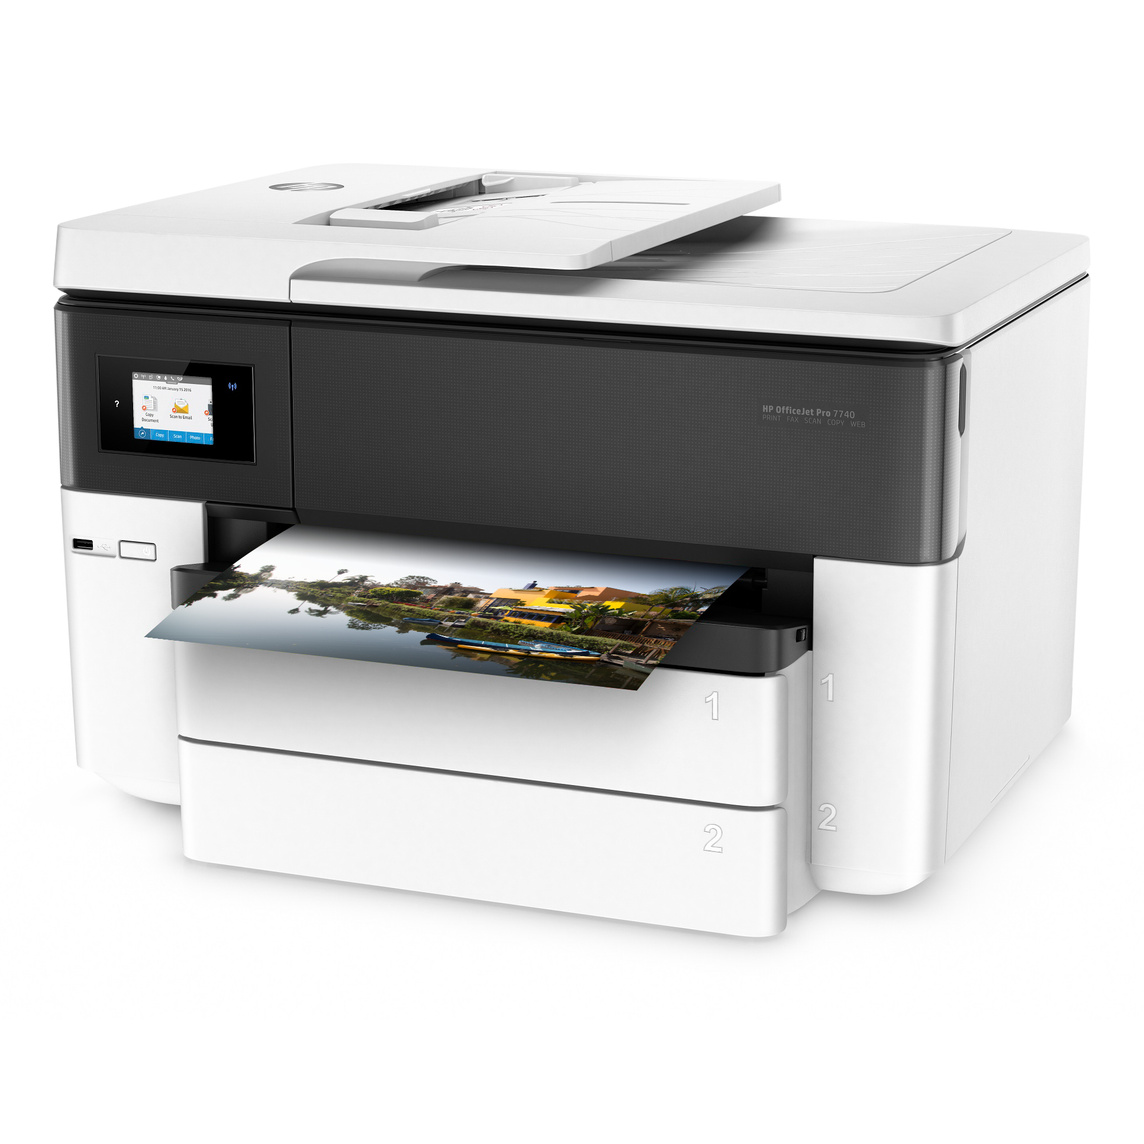 Brilliant Hp Officejet Pro 7740 All In One Wide Format Printer Download Free Architecture Designs Scobabritishbridgeorg